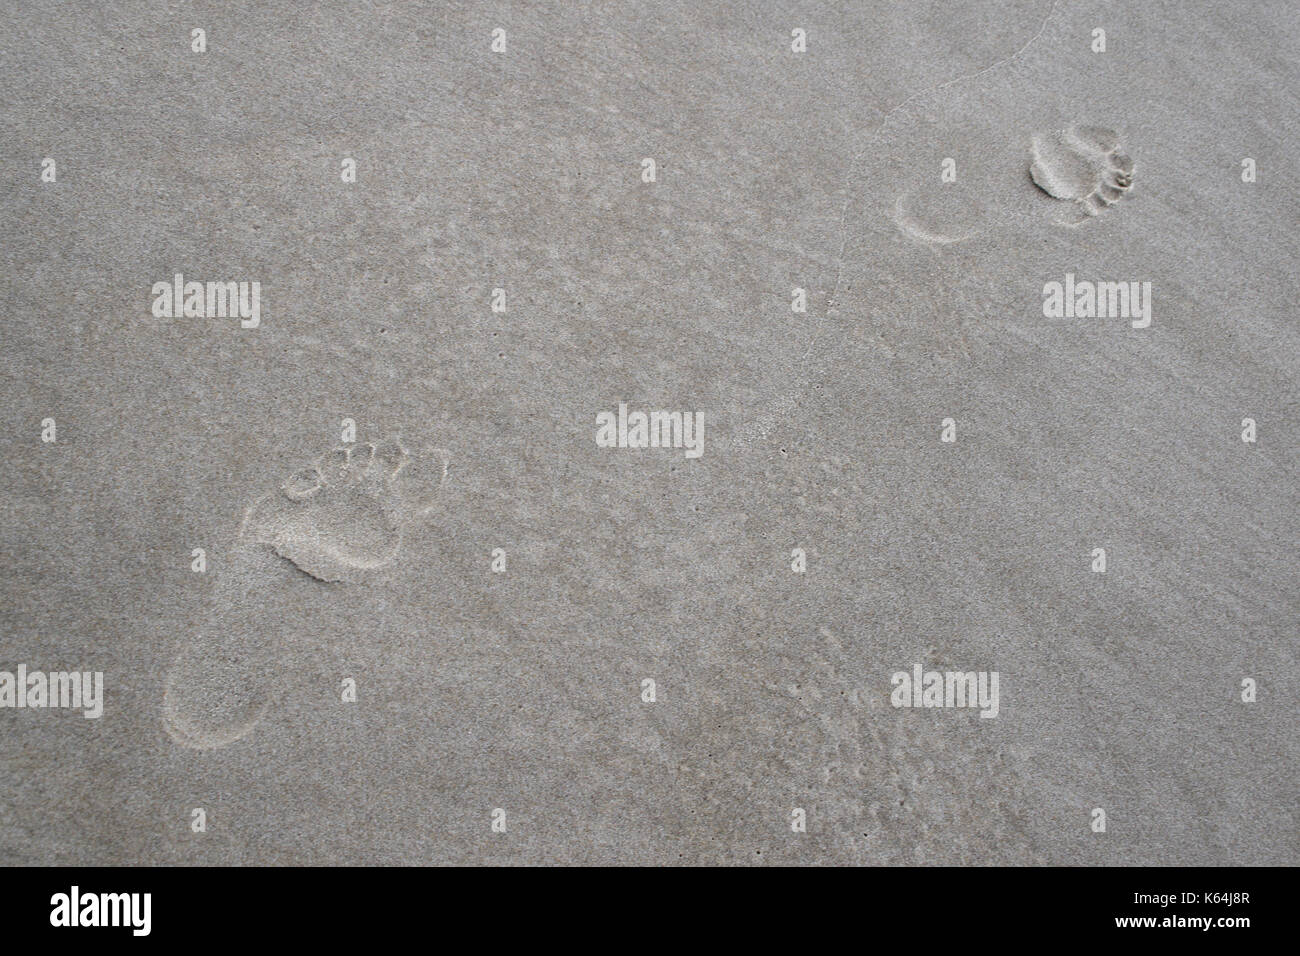 A promenader left foot prints in the sand of the beach near Henne Strand, Denmark, 18 August 2017.  - NO WIRE SERVICE · Photo: Tim Brakemeier/dpa-Zentralbild/ZB - Stock Image